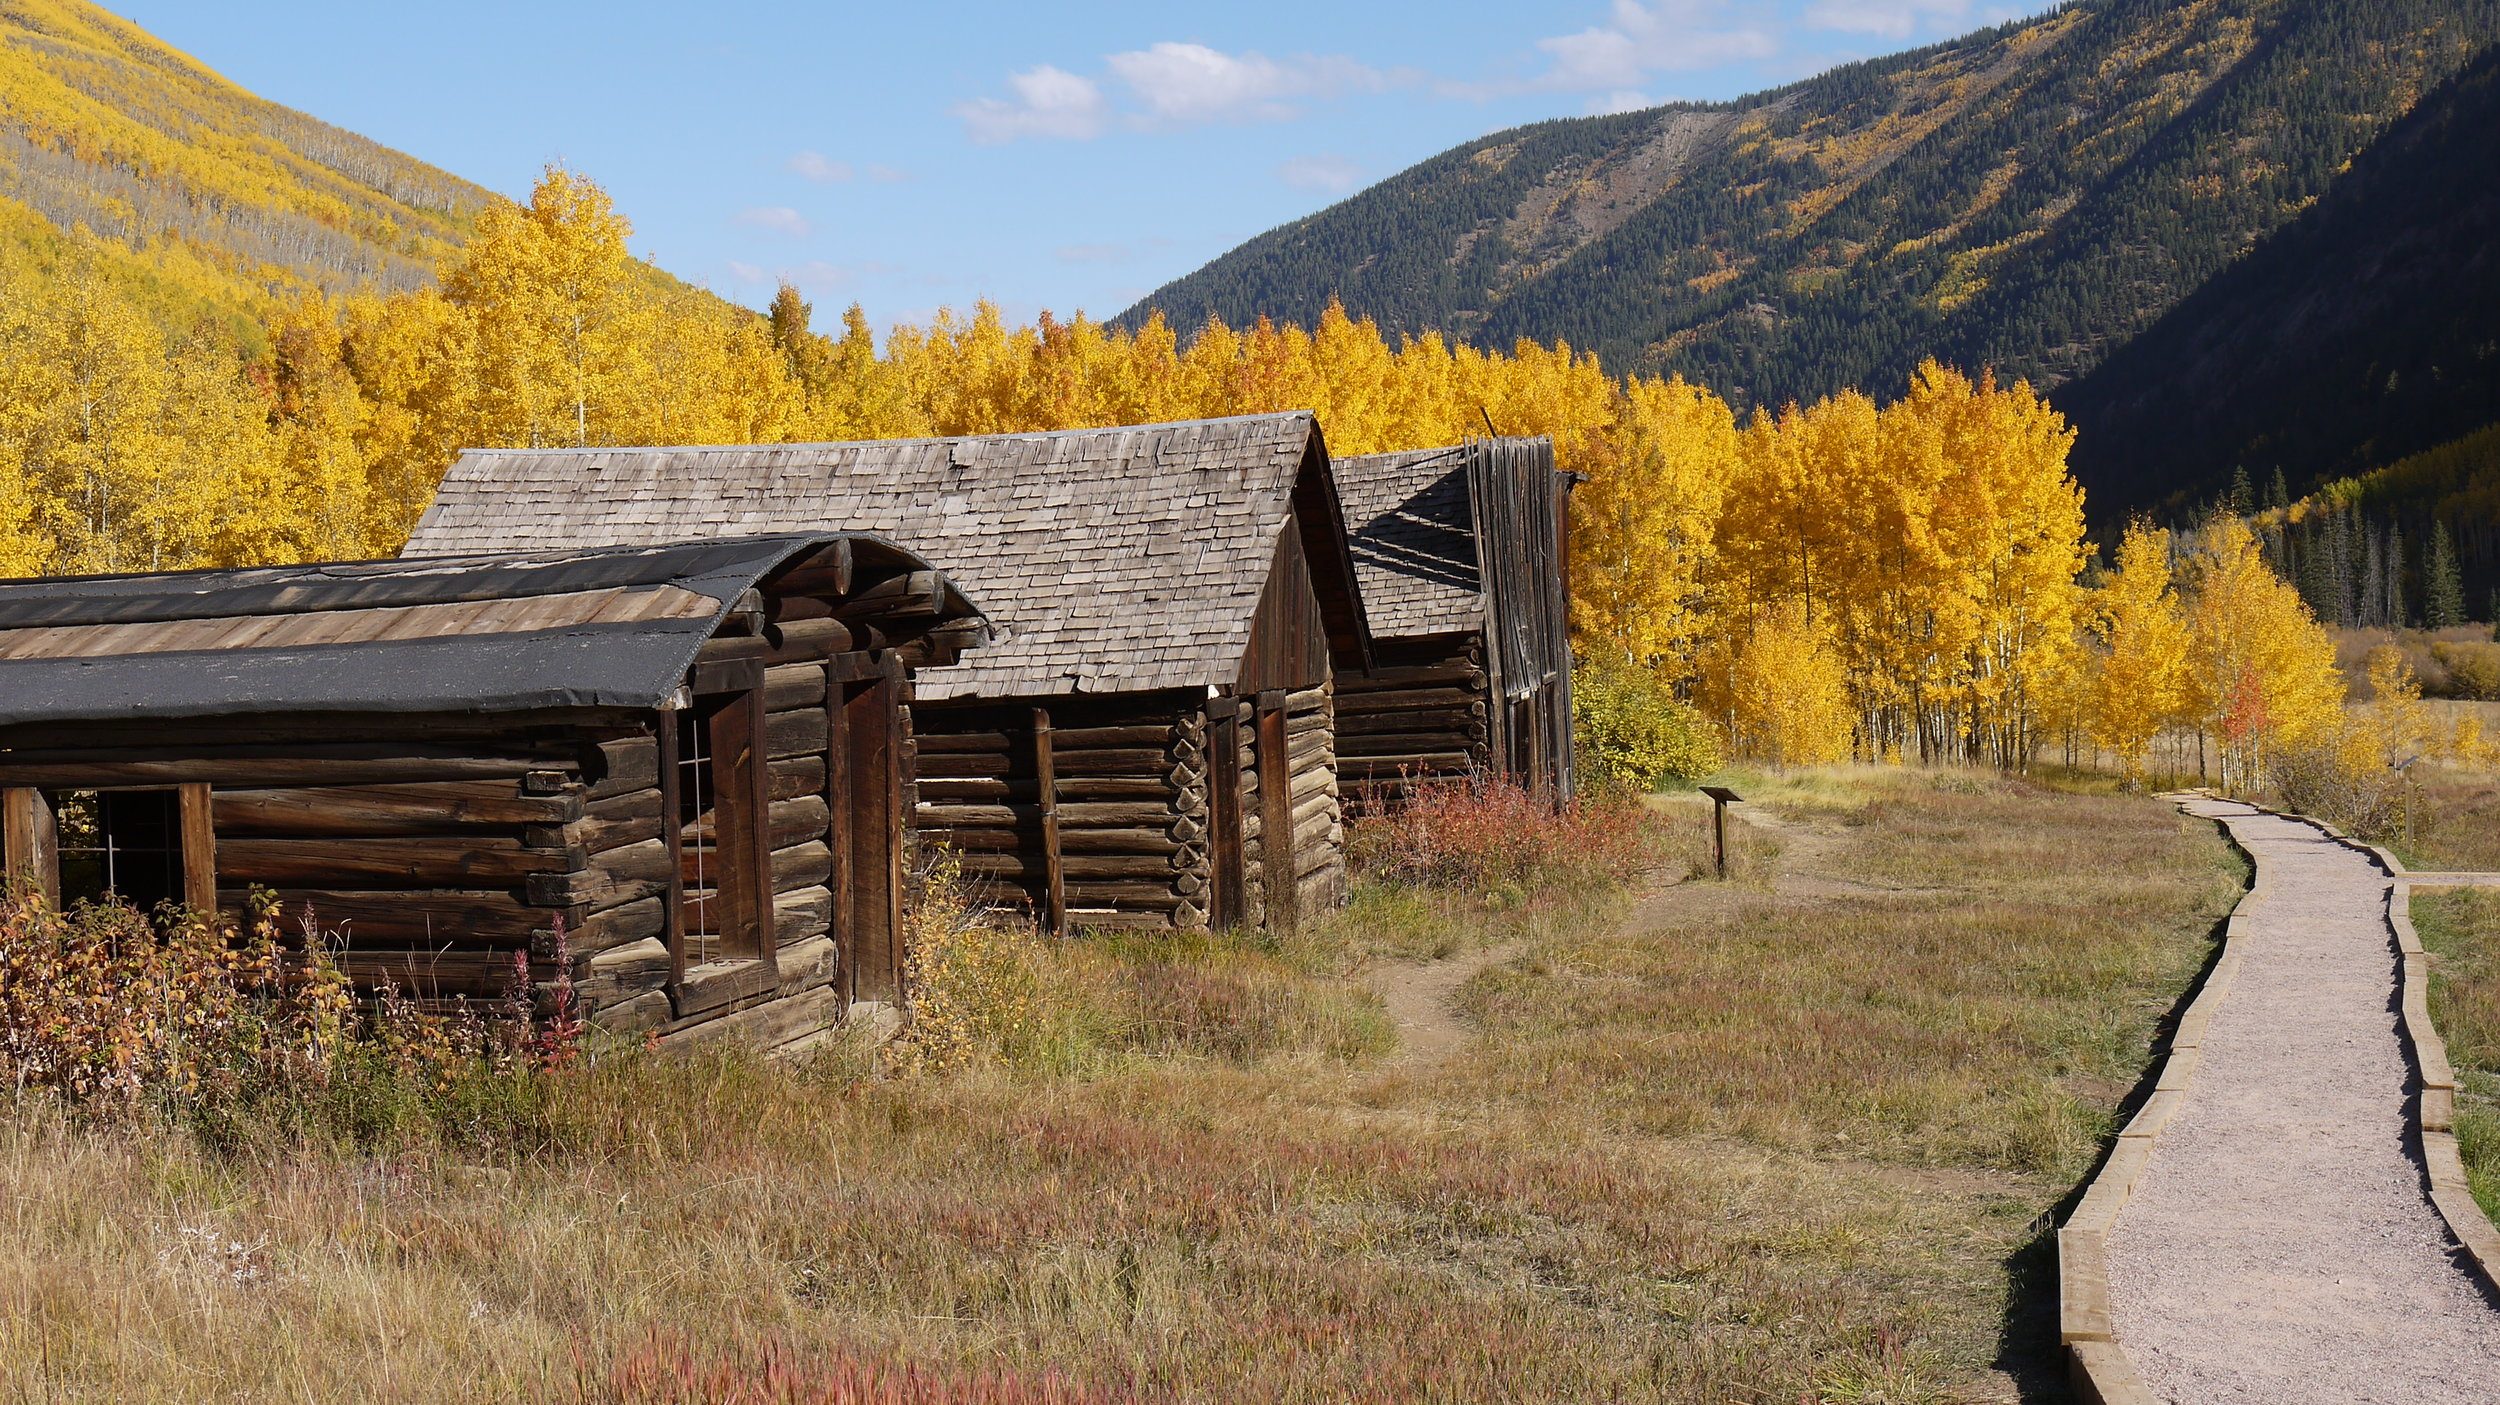 The historic Ashcroft Ghost Town has nearly a dozen restored buildings on site and signage which helps to tell the history of this once-bustling mining city. Today, there's a different sort of gold in the hills, and that's the kind found on the enormous stands of aspens enshrouding the town. Stop by for a guided tour from the Aspen Historical Society on Friday through Monday, 9 a.m. to 5 p.m., or check it out any time on your own.